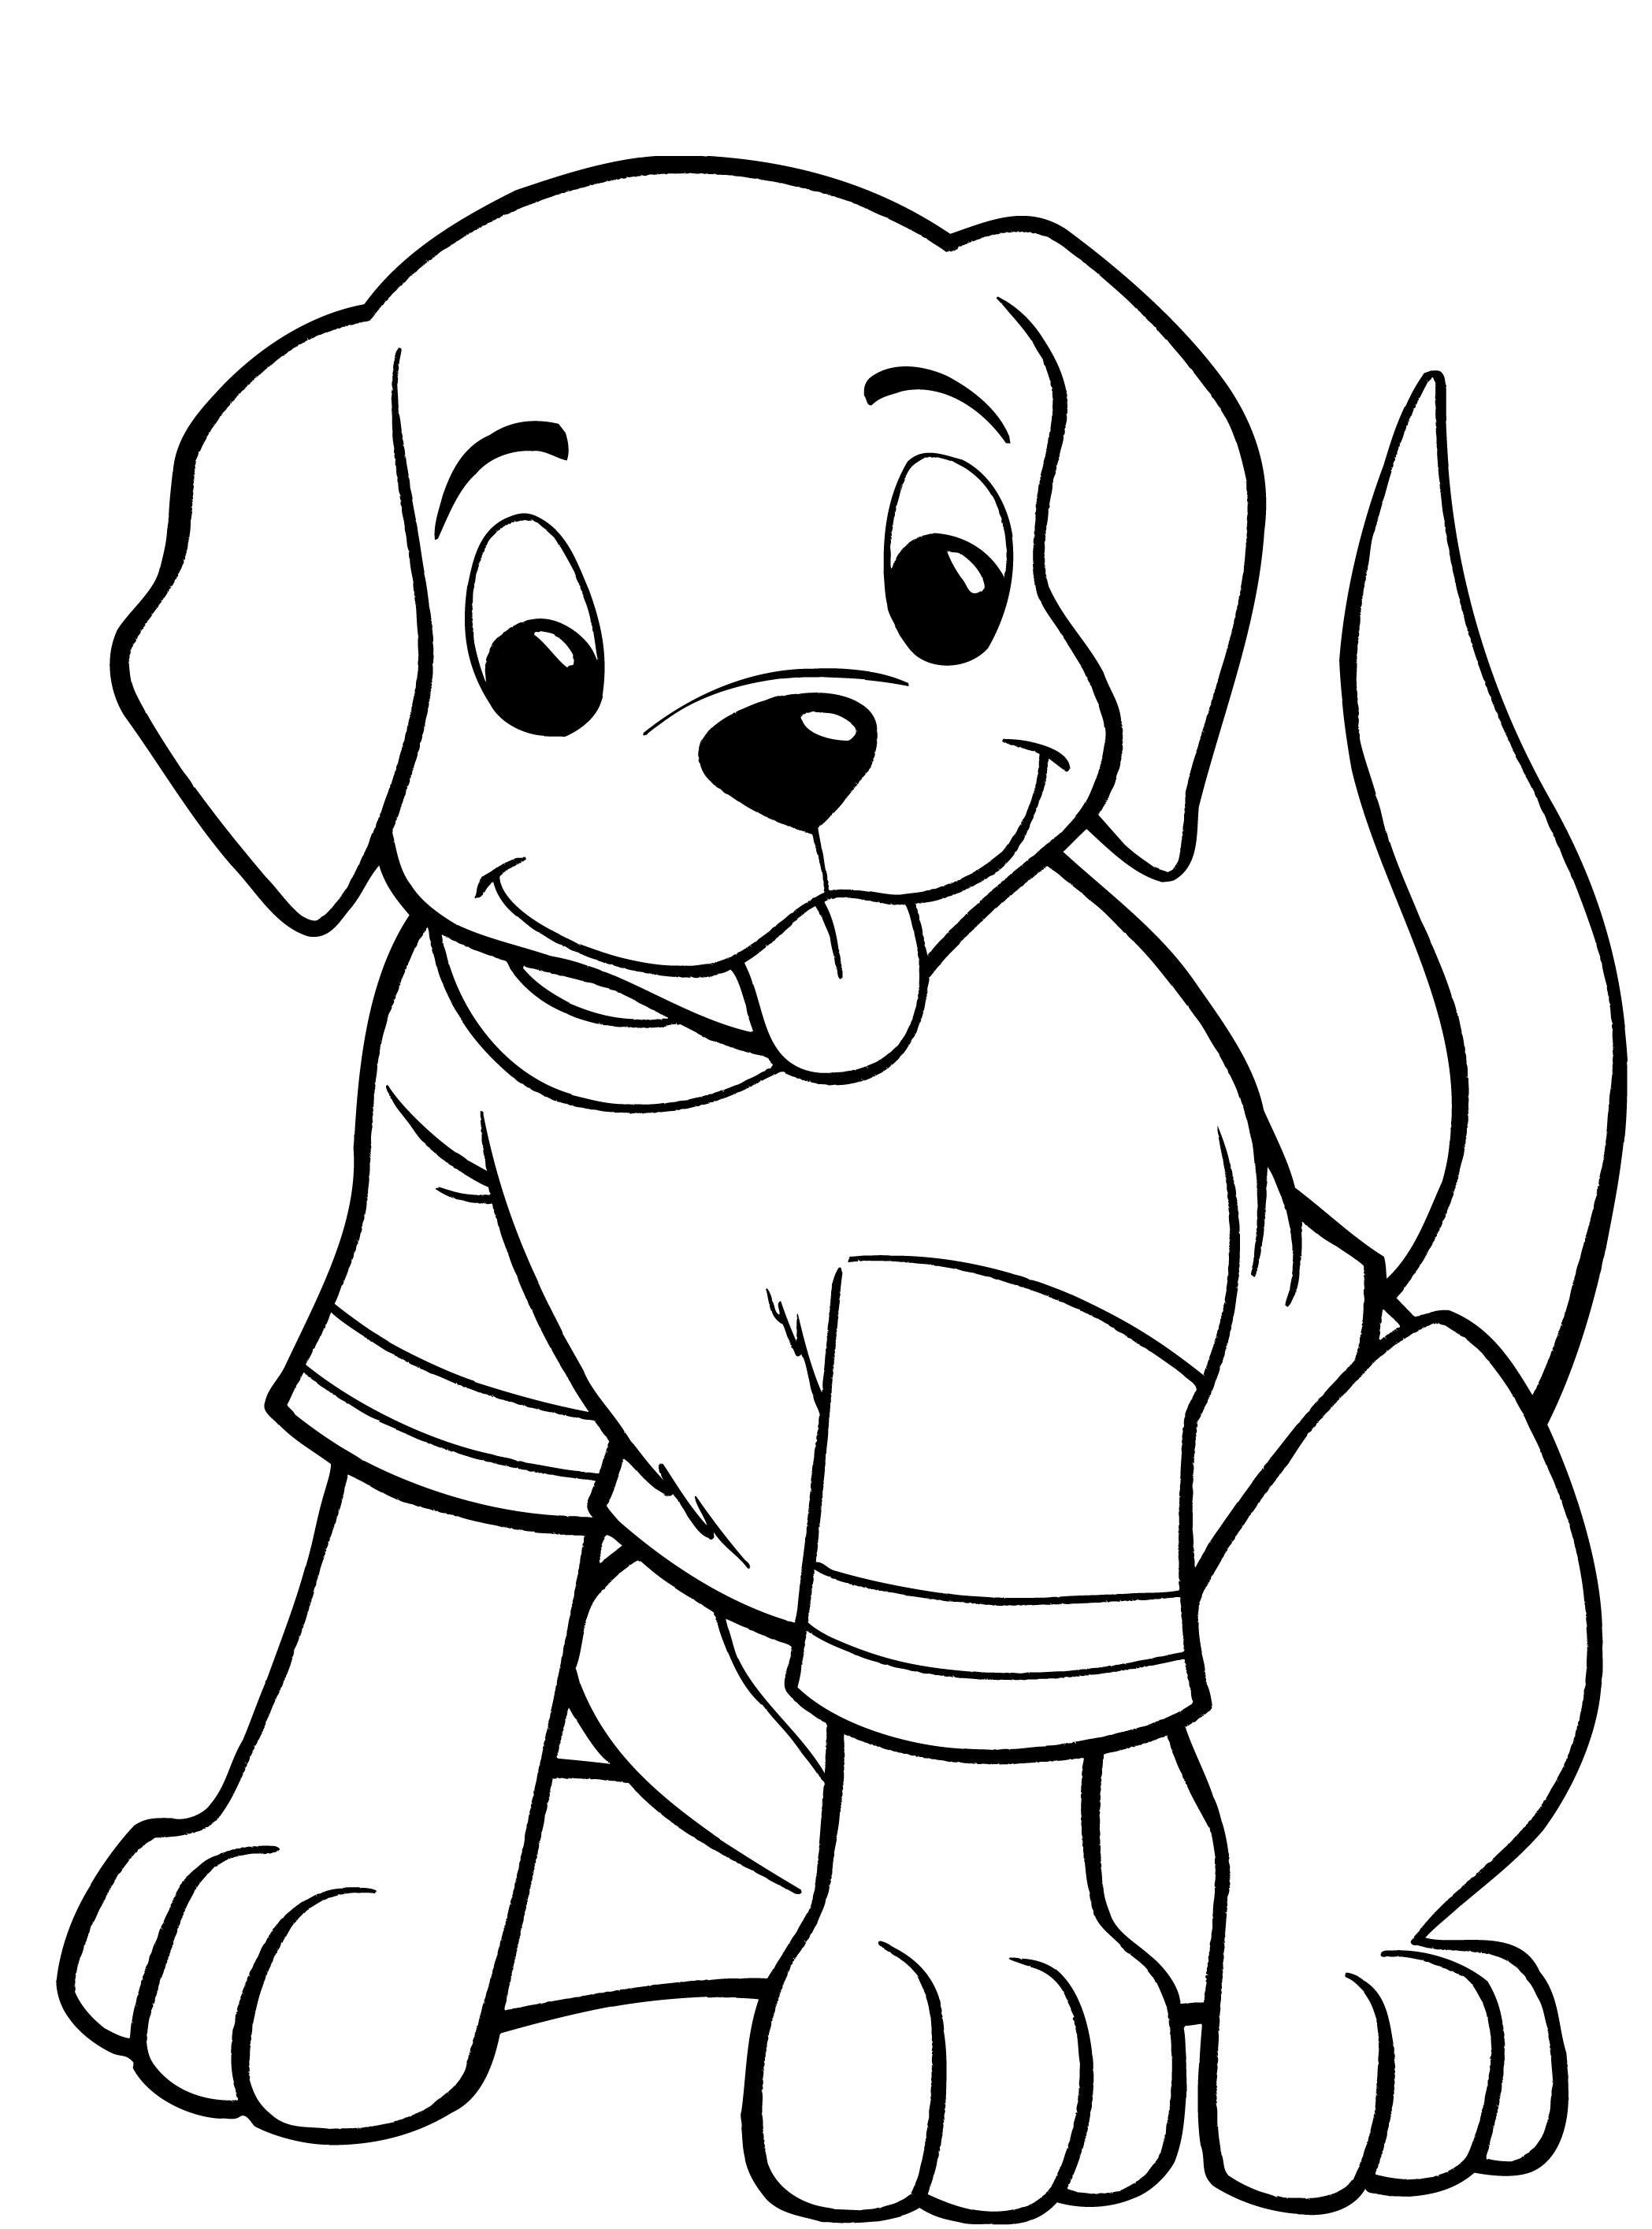 Yorkie Puppy Coloring Pages To